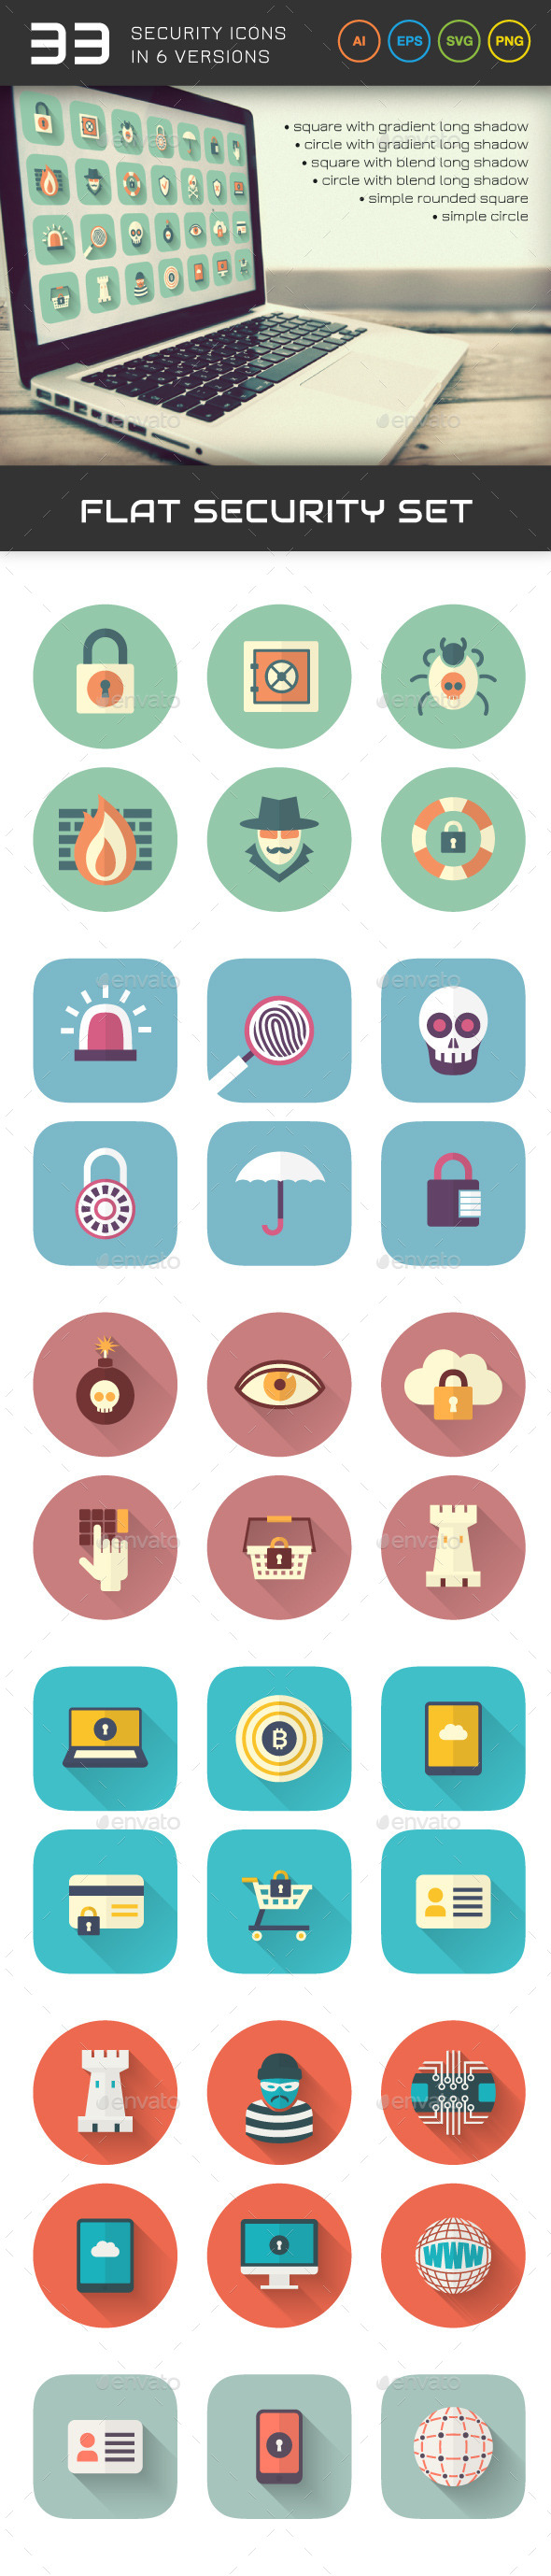 Flat Security Set - Technology Icons